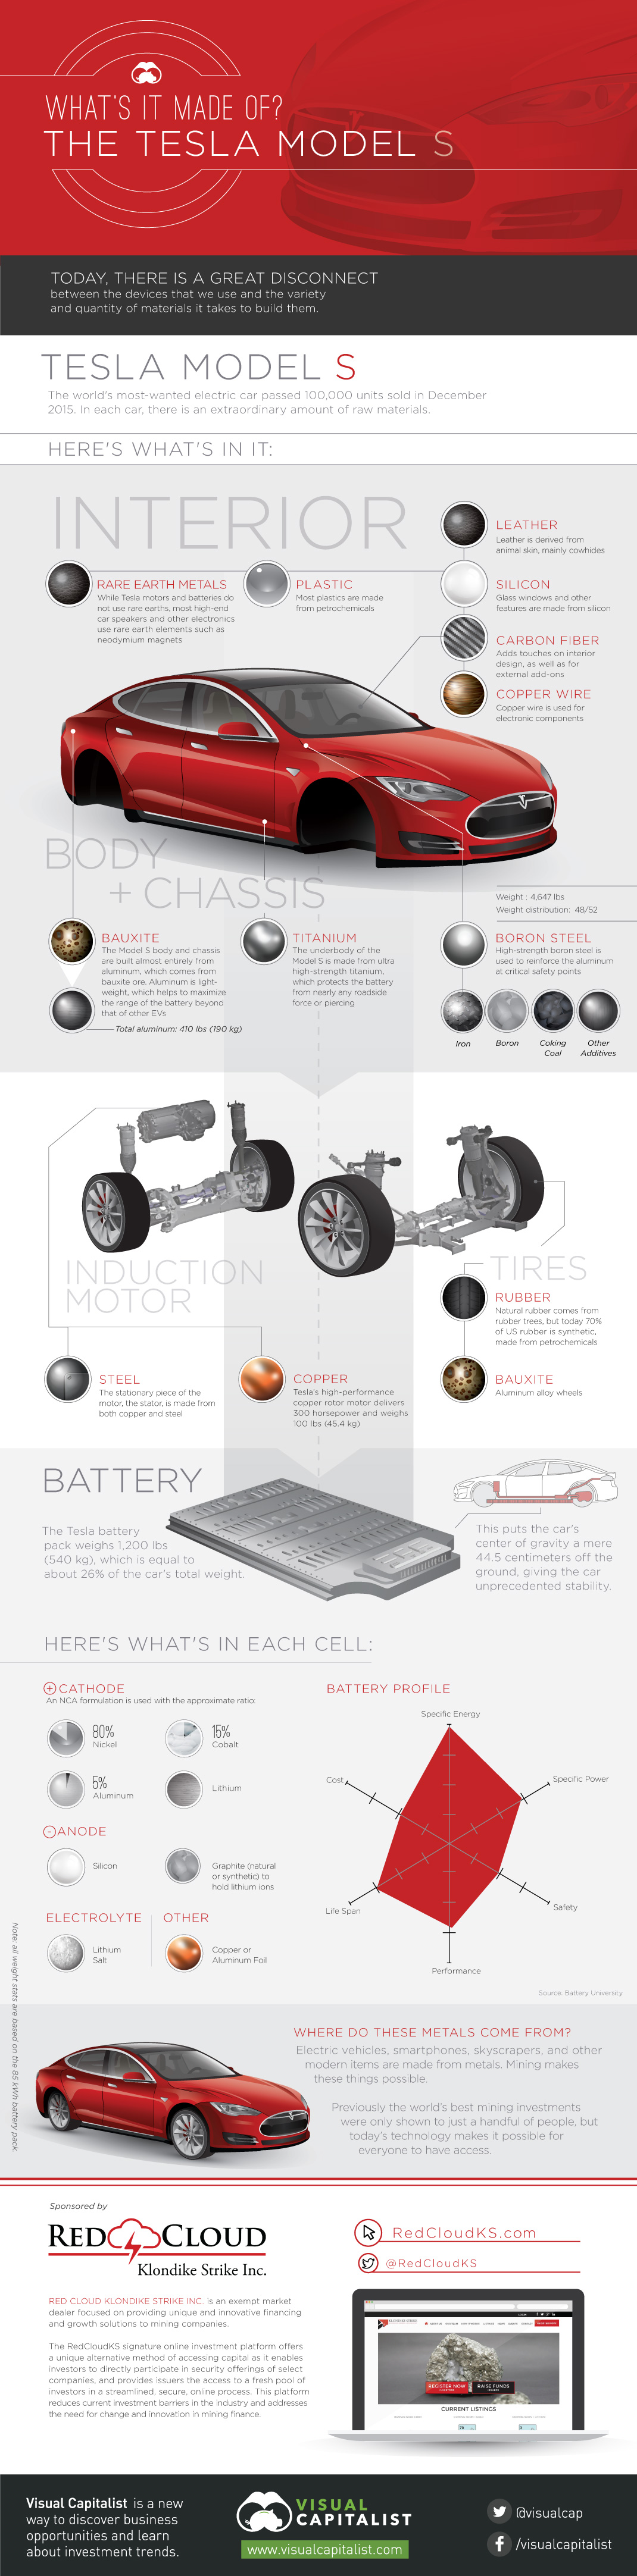 Tesla-model-s-what-it-made-from-2